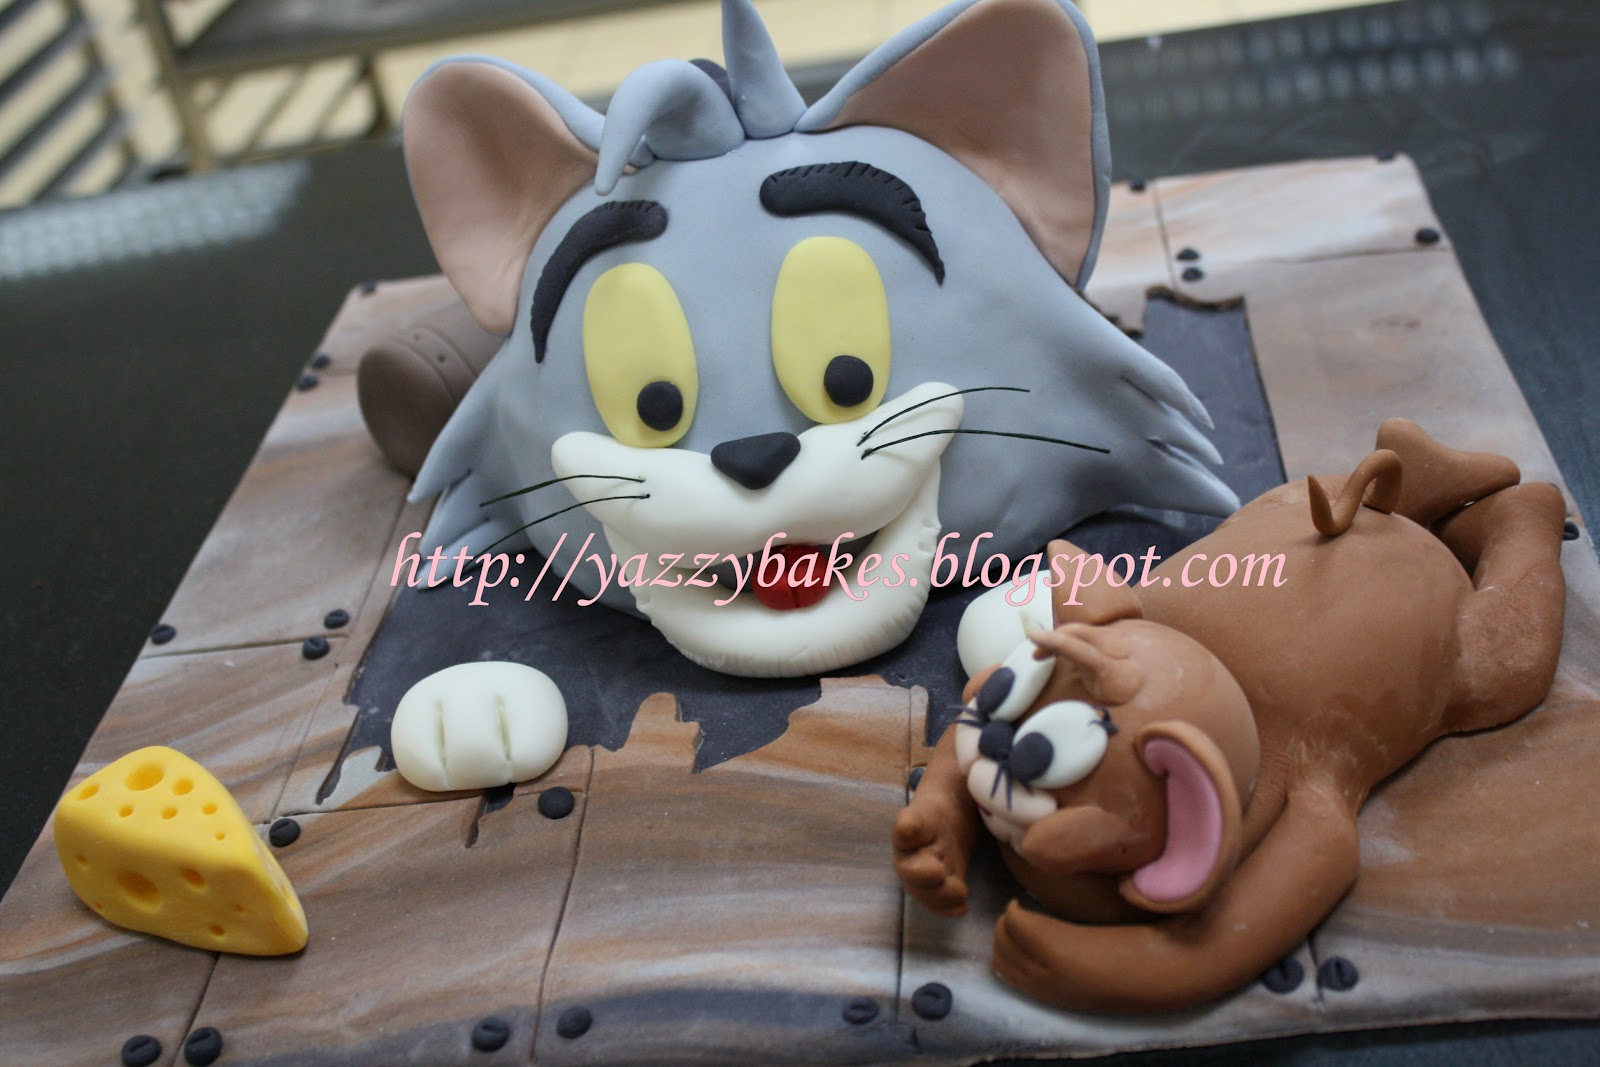 Yazzy Bakes Tom Amp Jerry